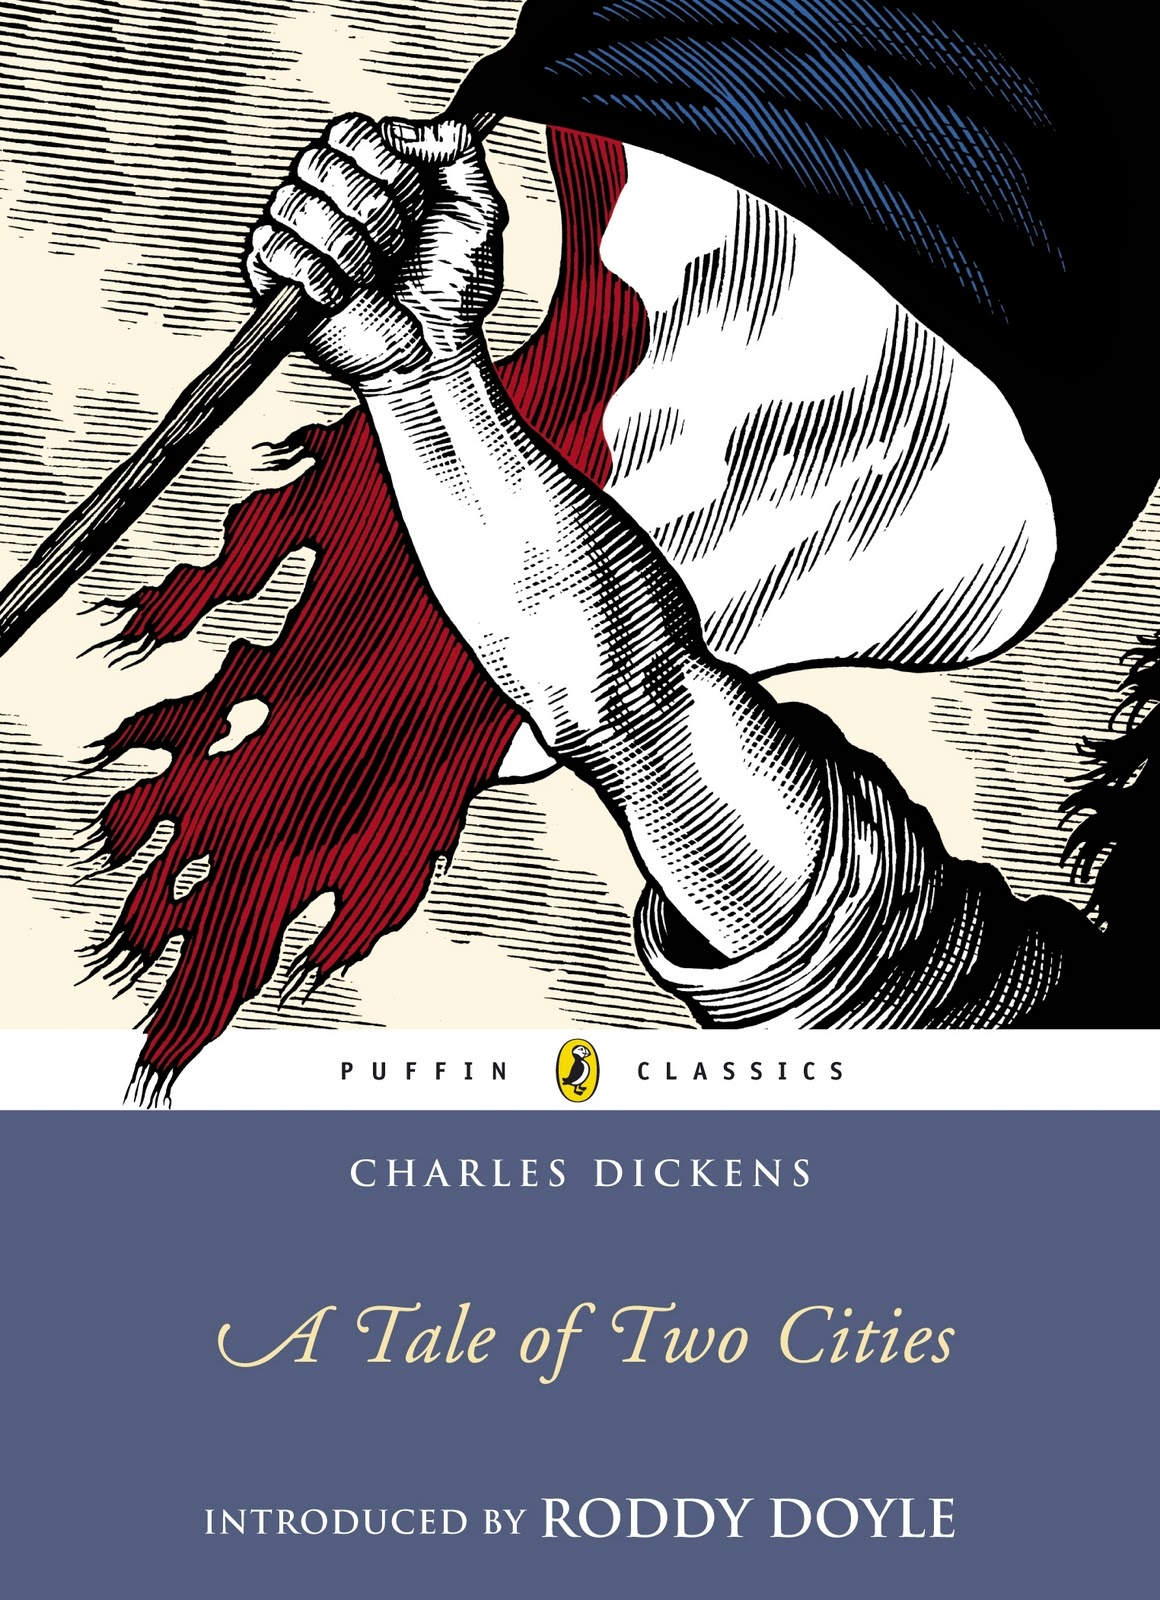 a tale of two cities essays a tale of two cities sacrifice essay  a tale of two cities sacrifice essay a tale of two cities sacrifice essay